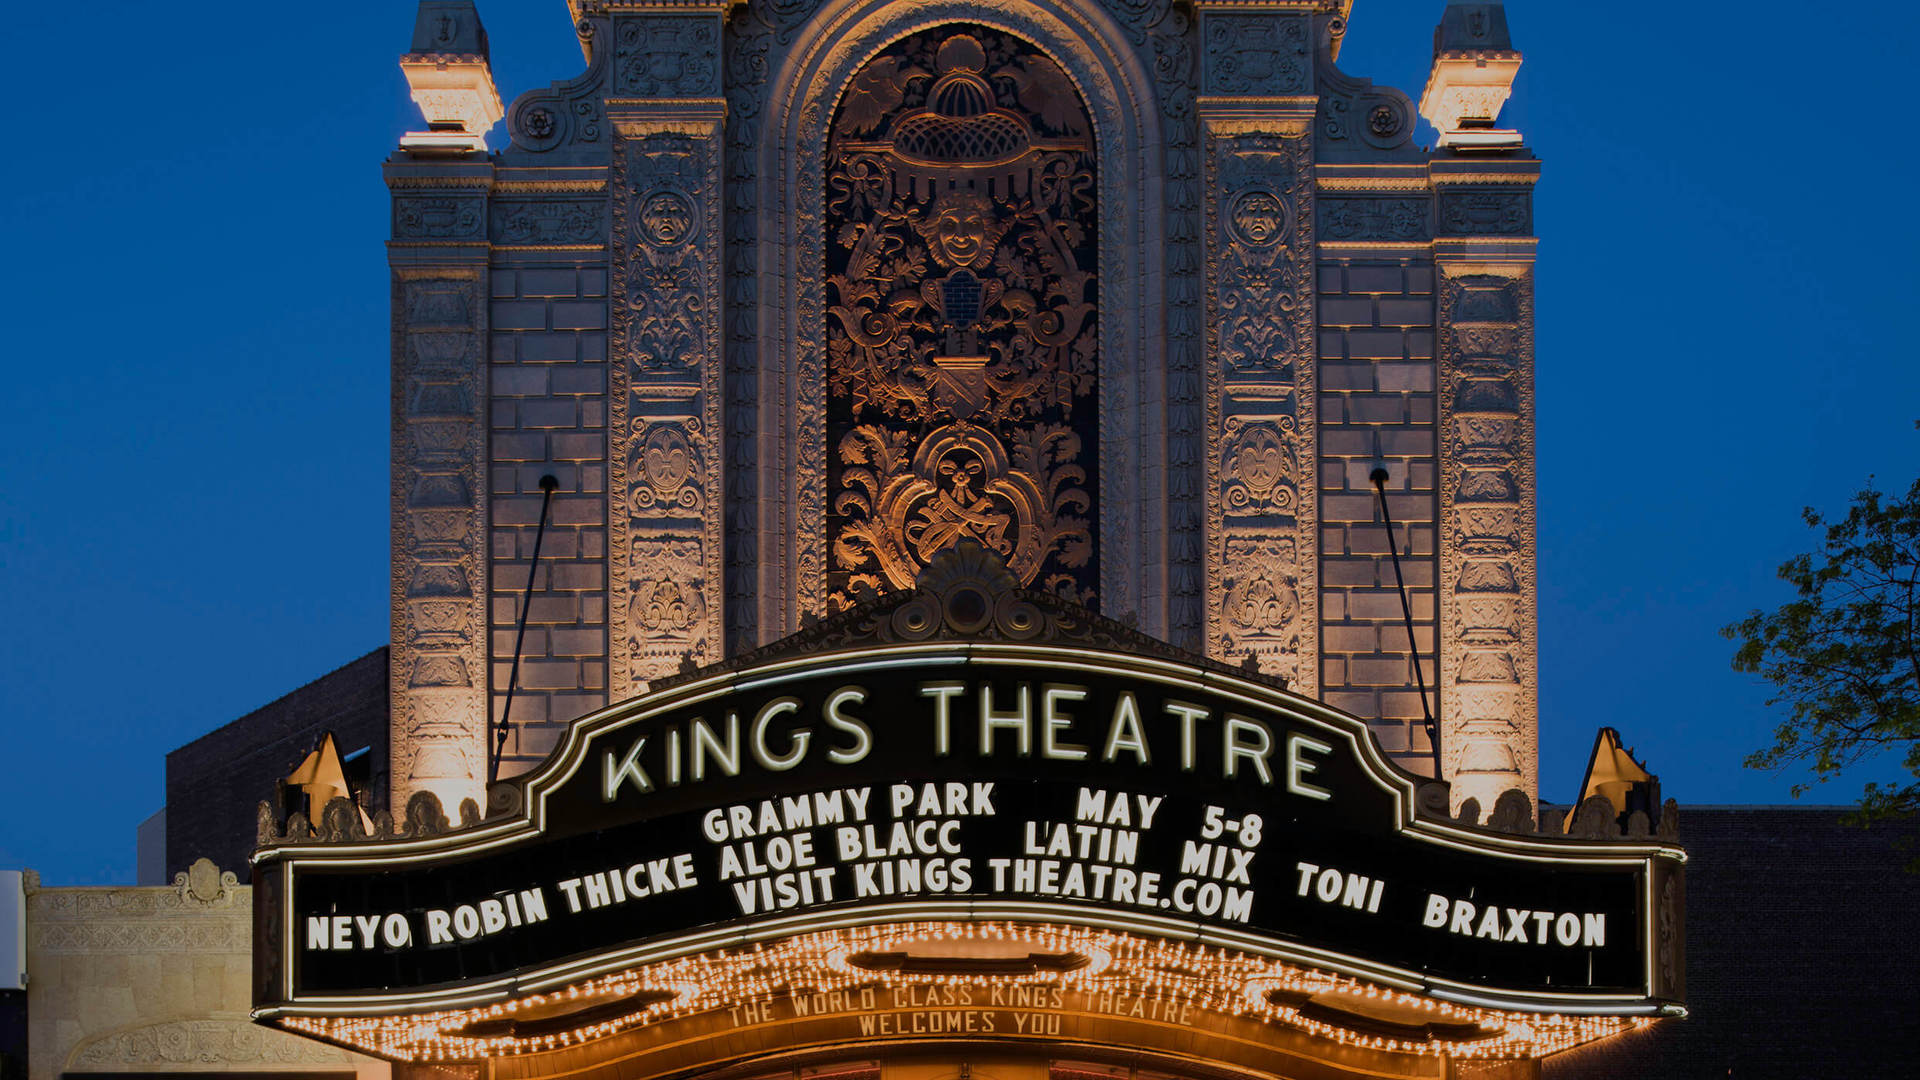 Kings theater card